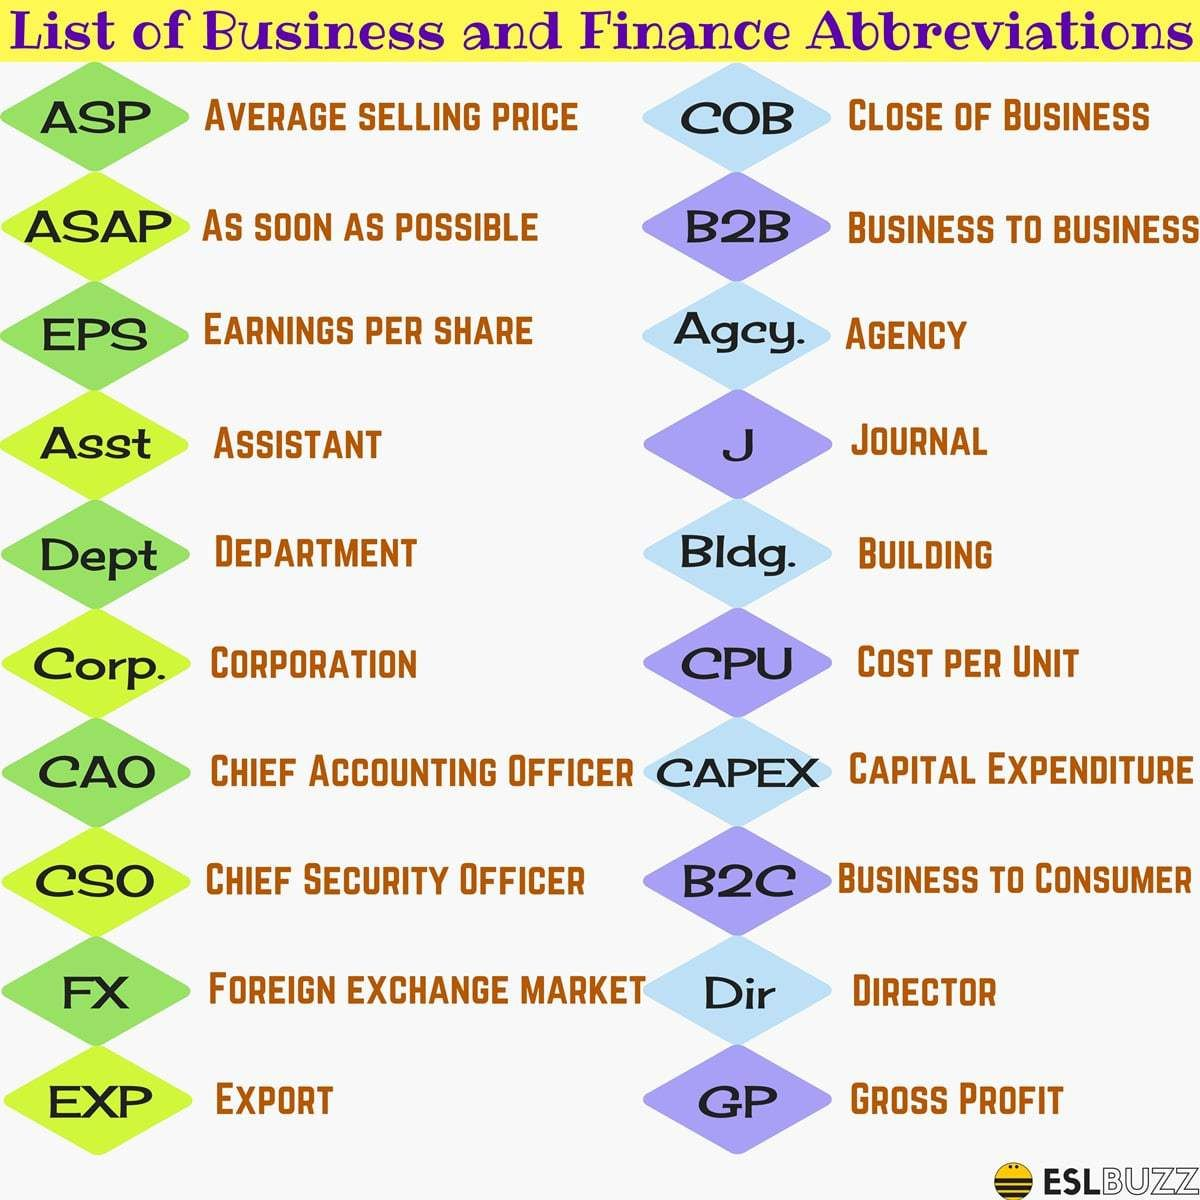 List Of Business And Finance Abbreviations